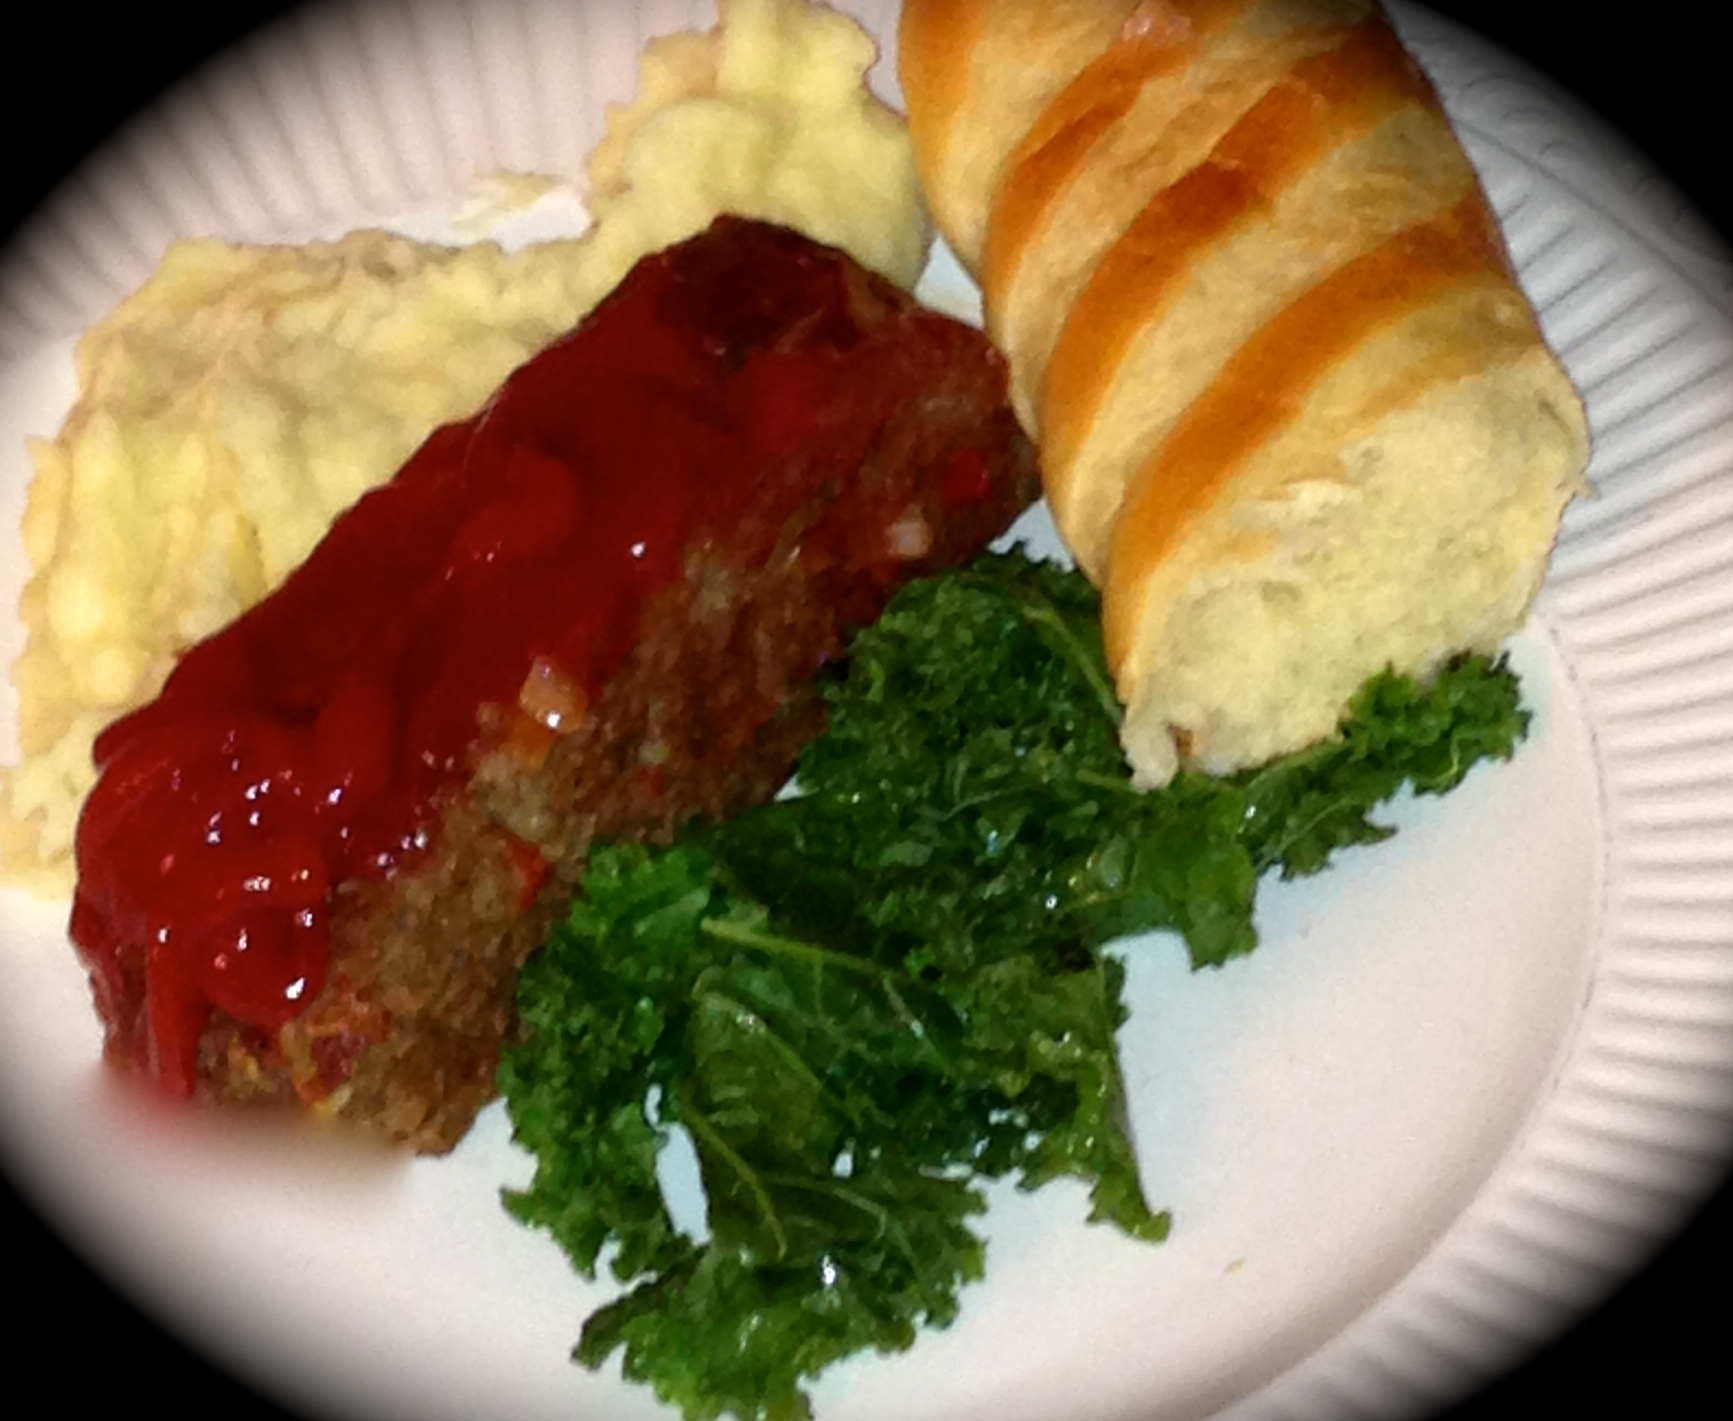 Sirloin Meatloaf, Cheesy Mashed Potatoes, and Roasted Kale